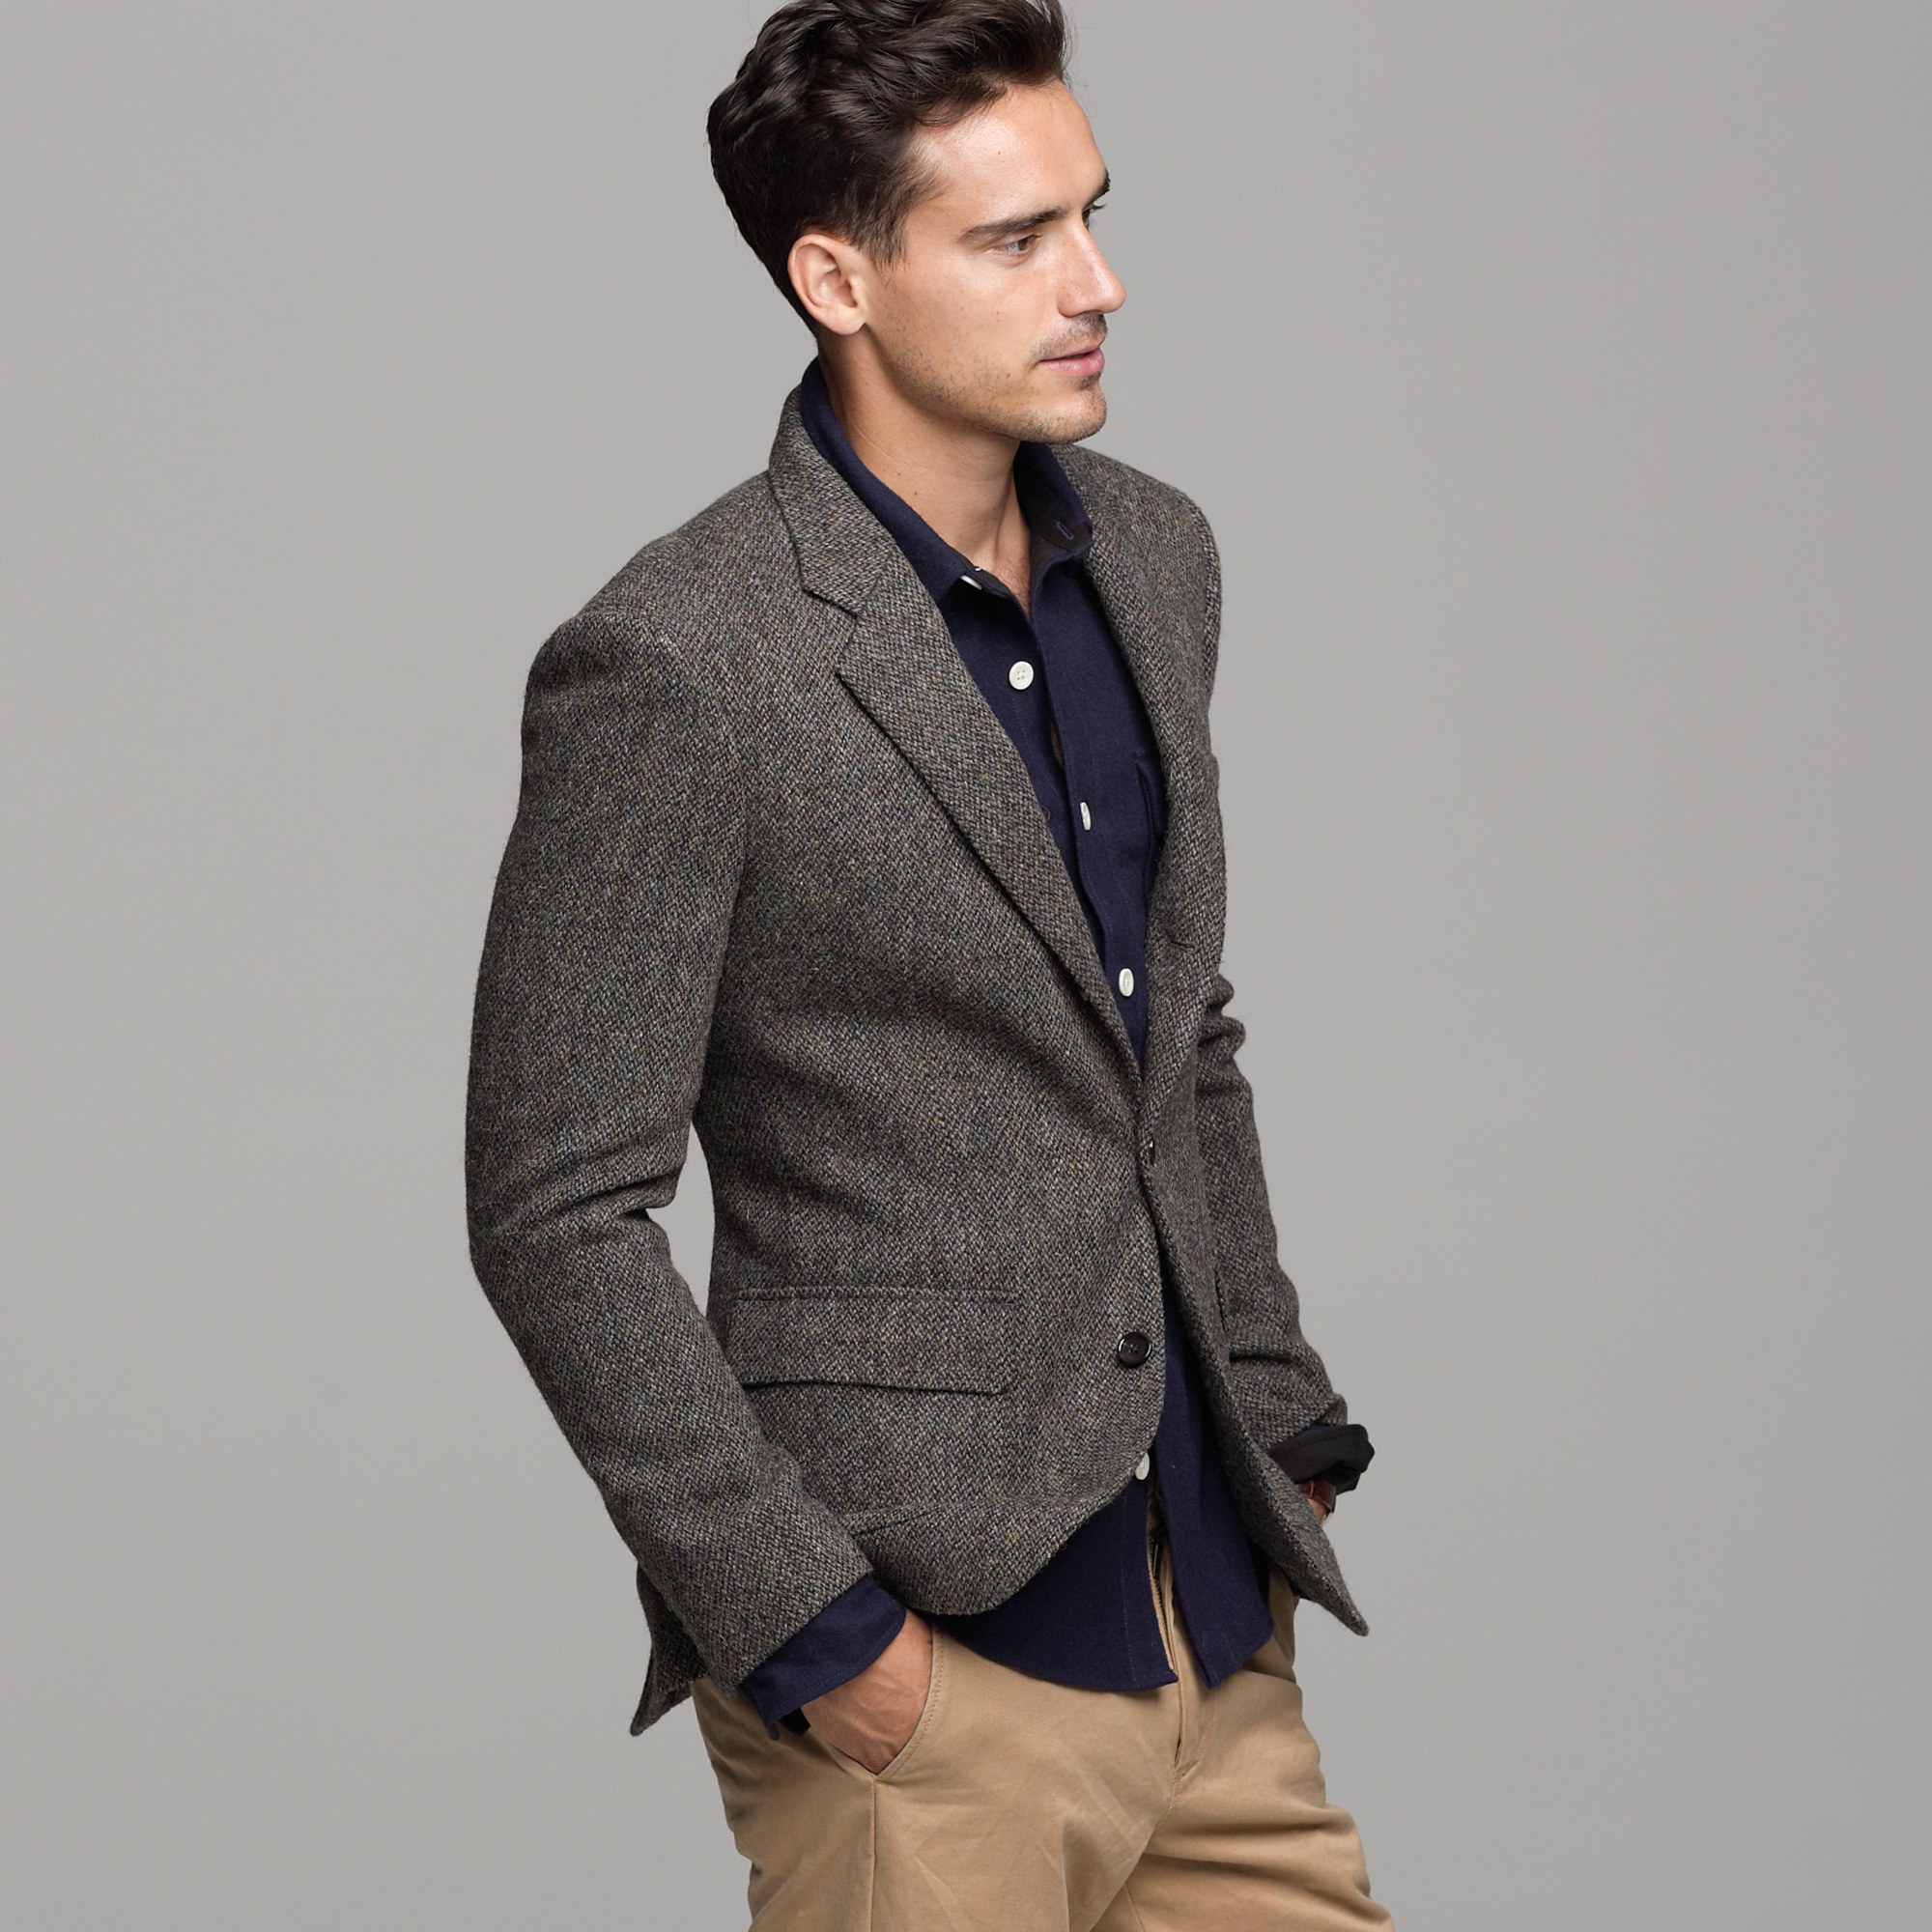 J.crew Harris Tweed Sportcoat in Ludlow Fit in Brown for Men | Lyst